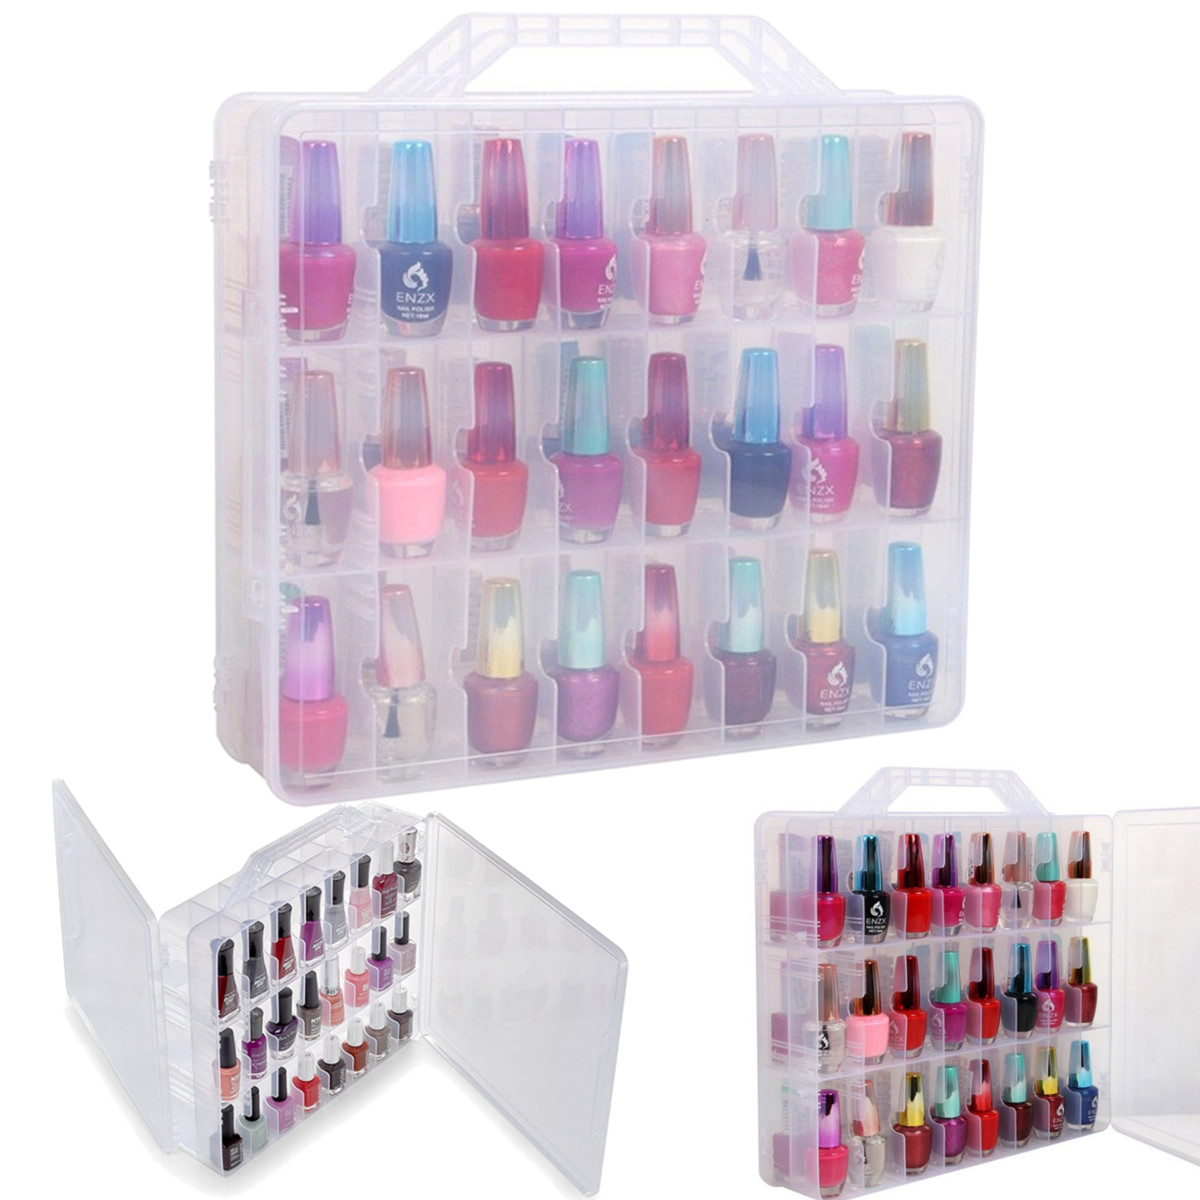 Pro 48 Lattice Nail Polish Holder Display Container Organizer Storage Box Case Art Tools Showing